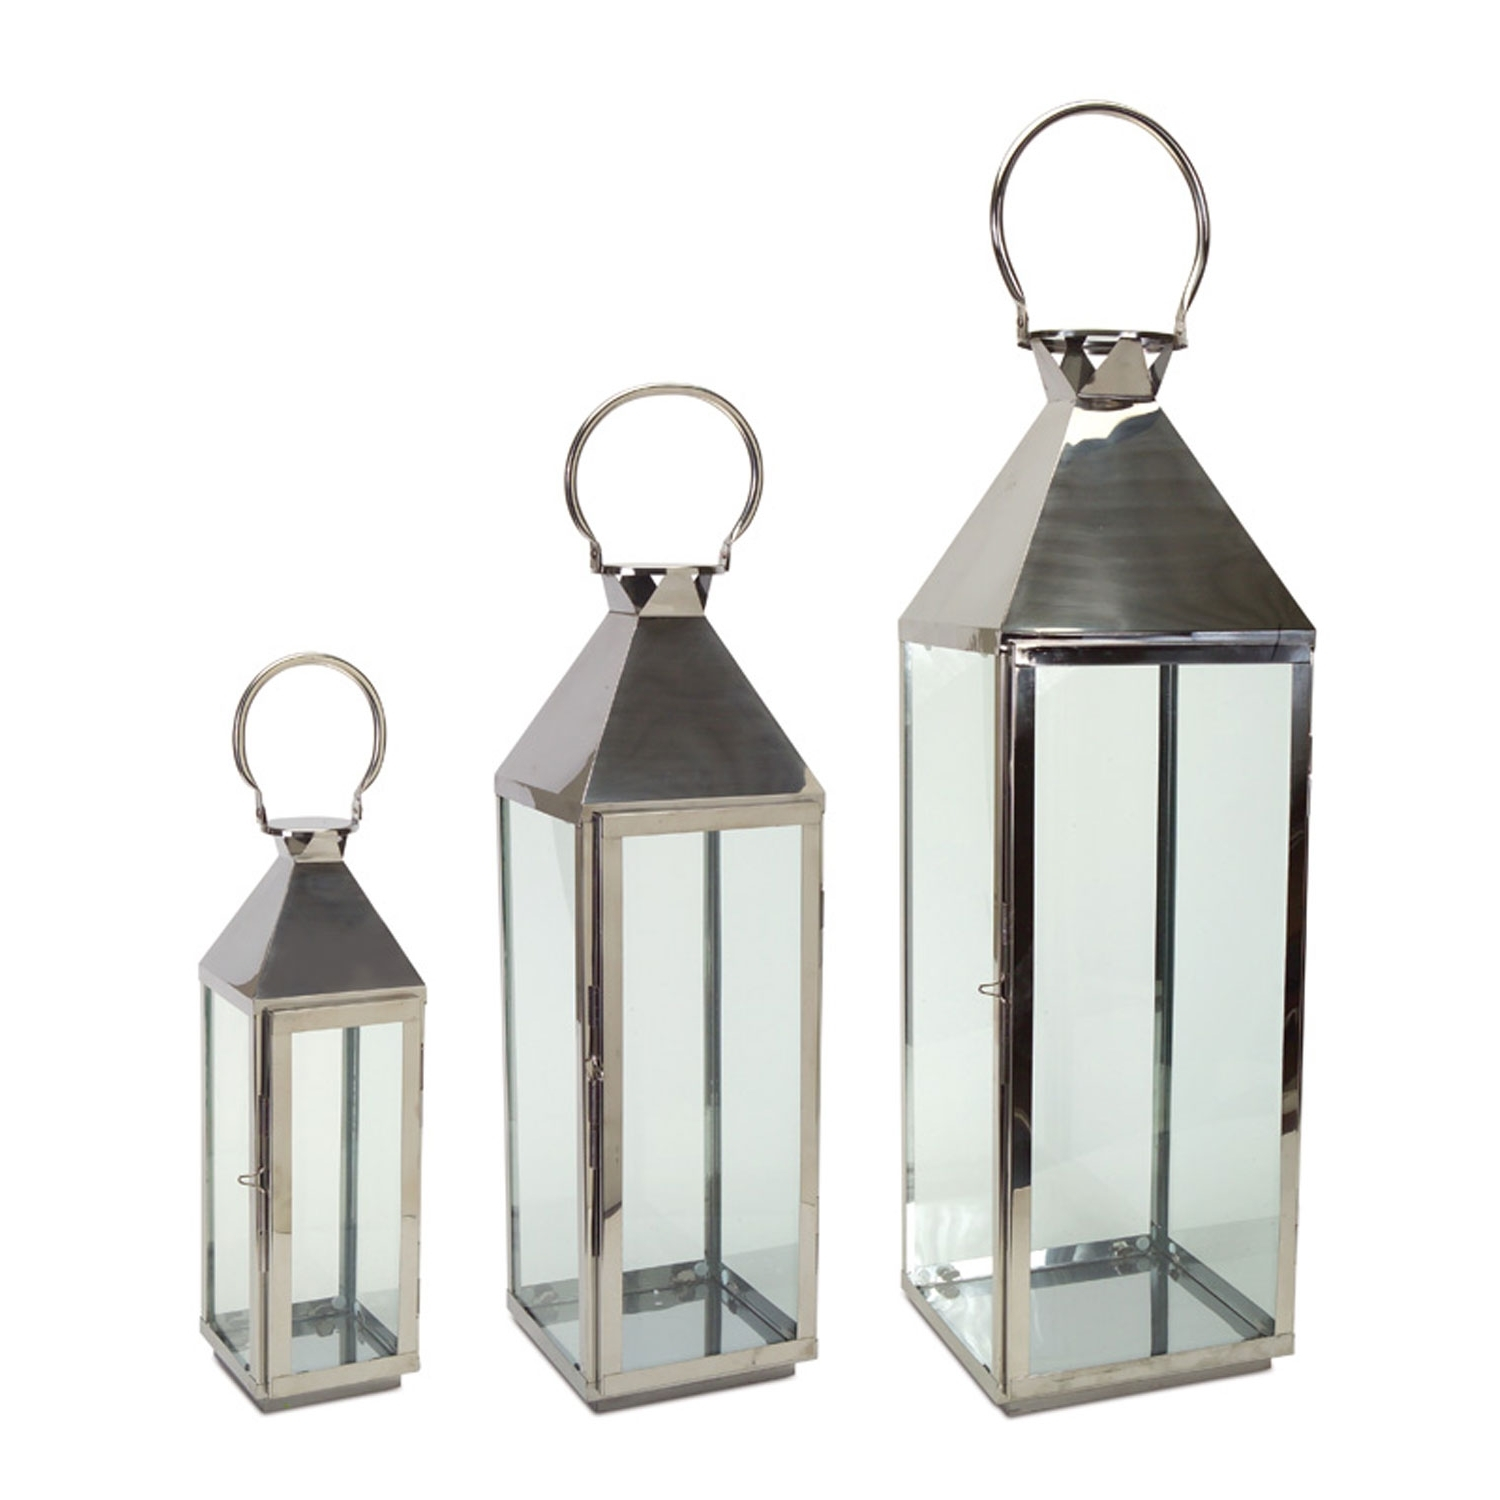 Well Known Outdoor Hanging Candle Lanterns Intended For Candle Lanterns, Outdoor Hanging Lanterns, Decorative On Sale (View 19 of 20)